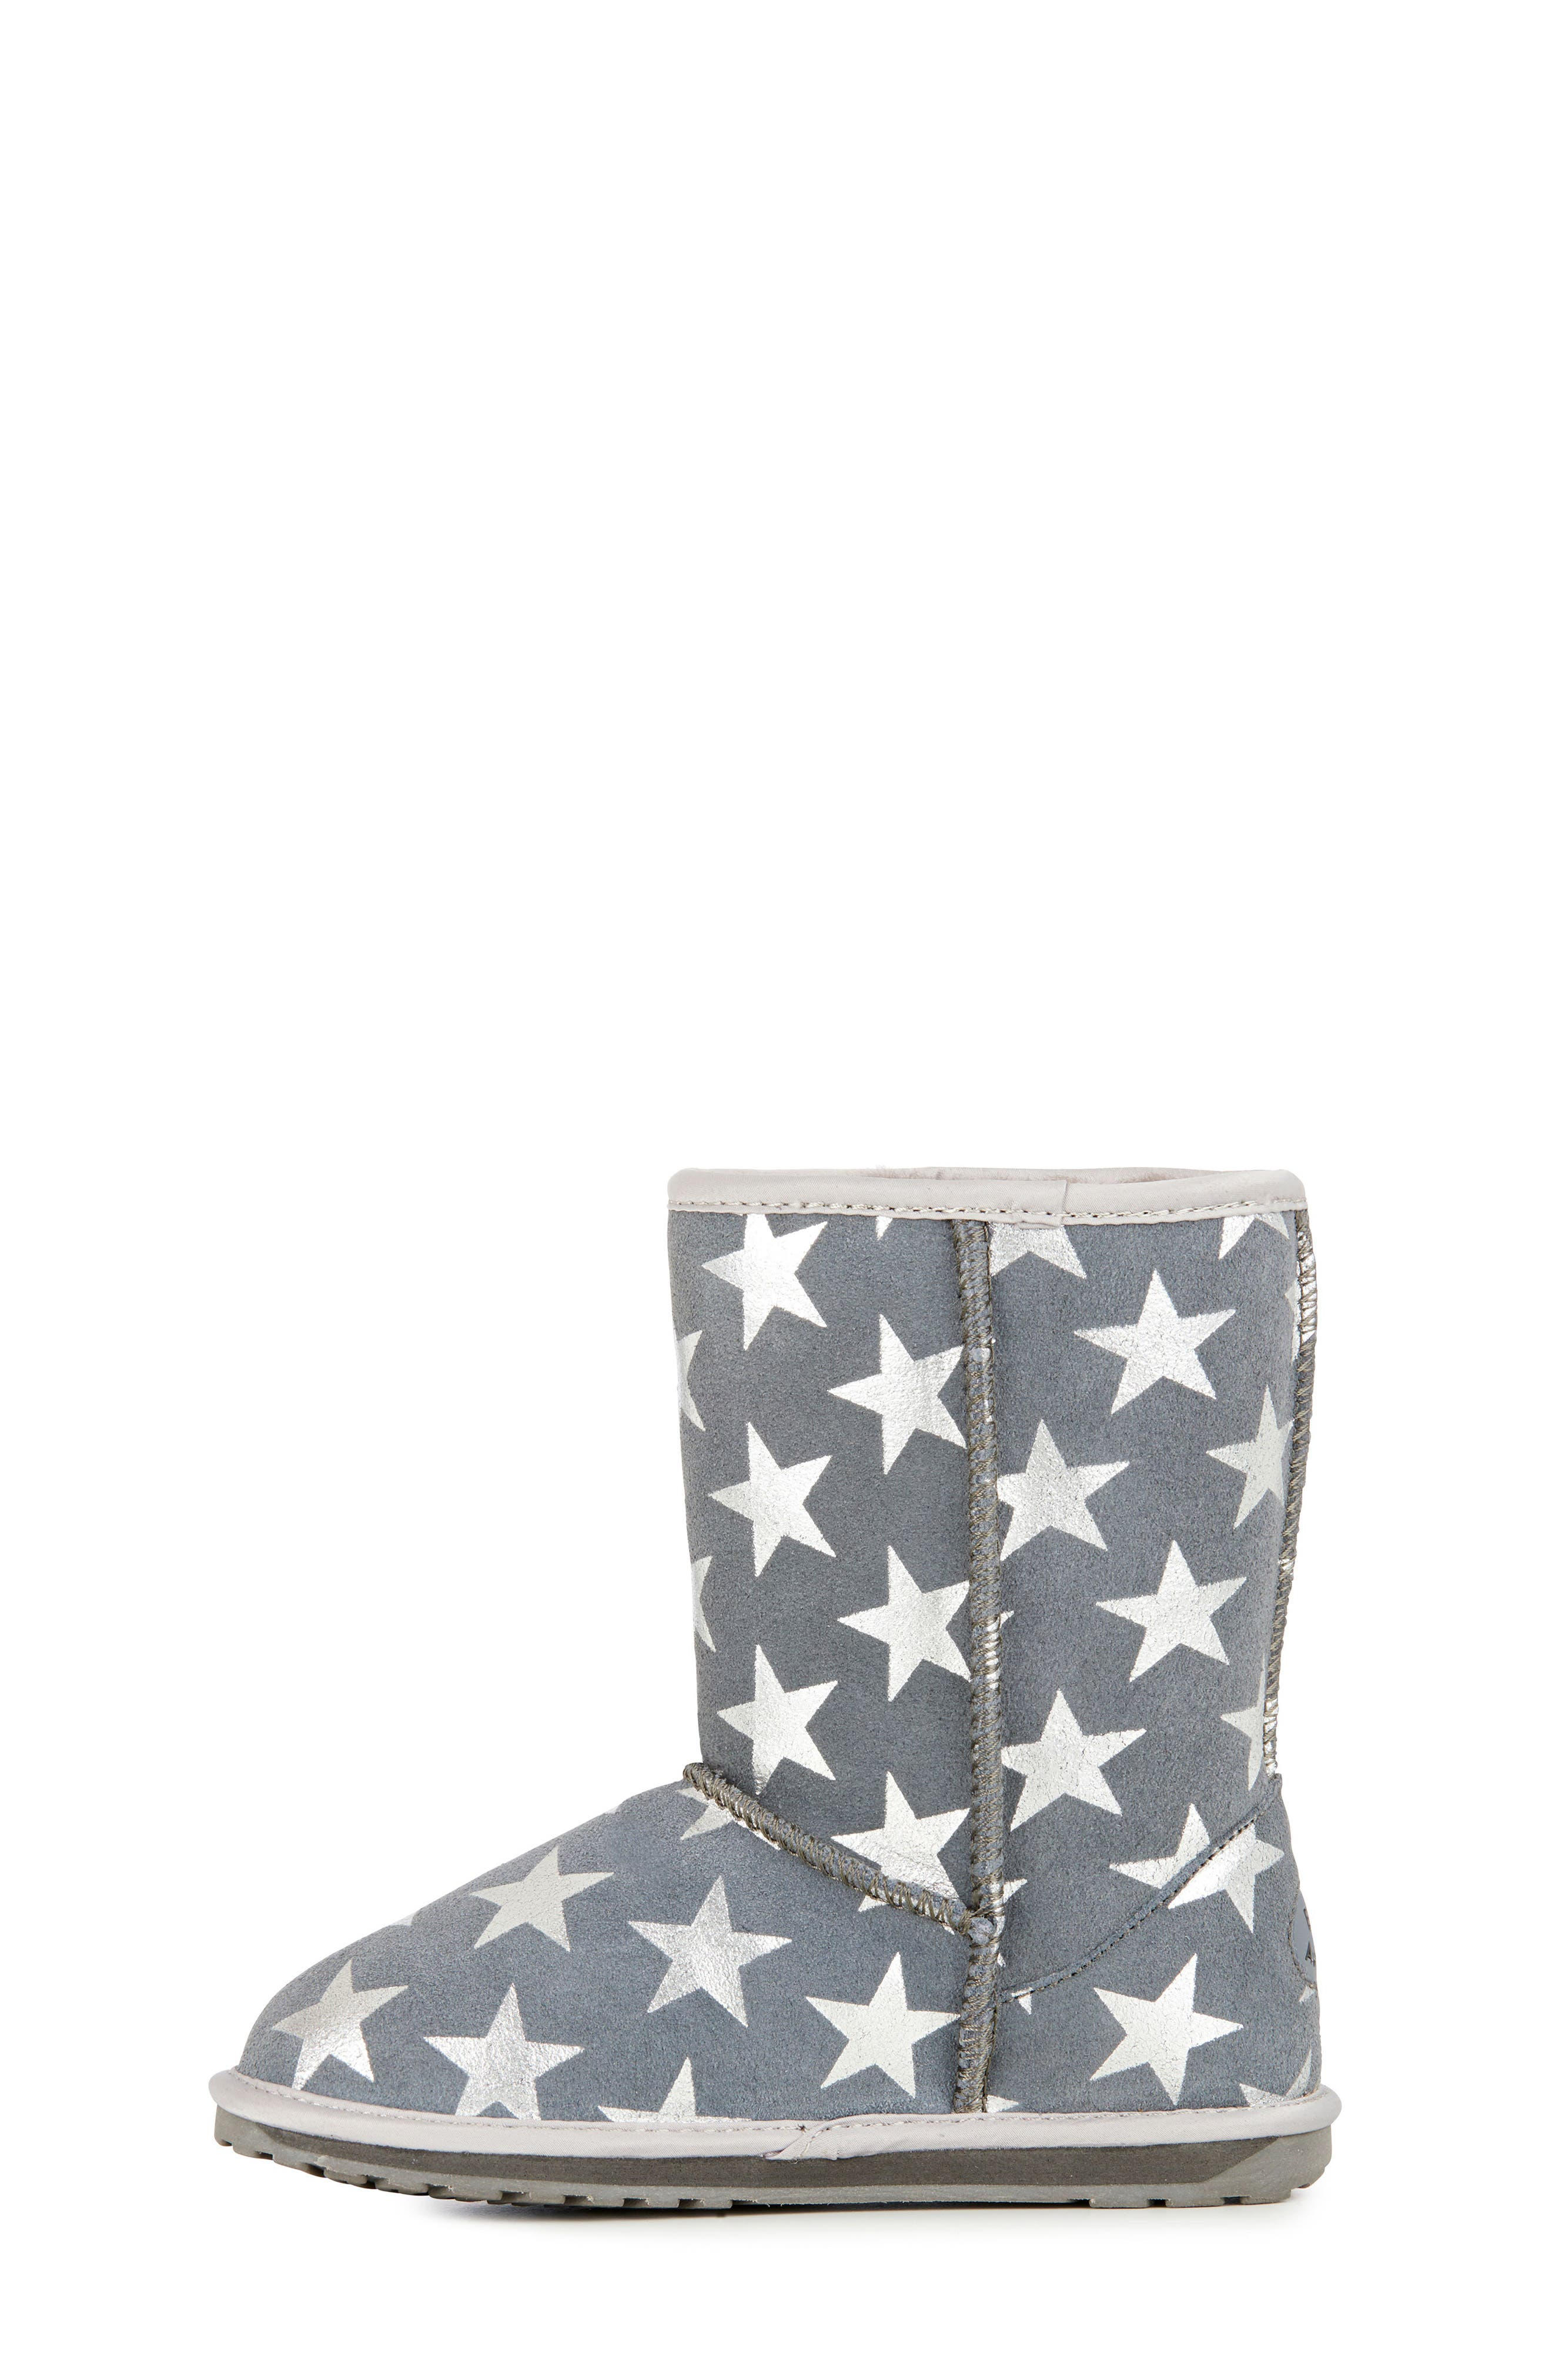 EMUAustralia Starry Night Boot,                             Alternate thumbnail 10, color,                             CHARCOAL